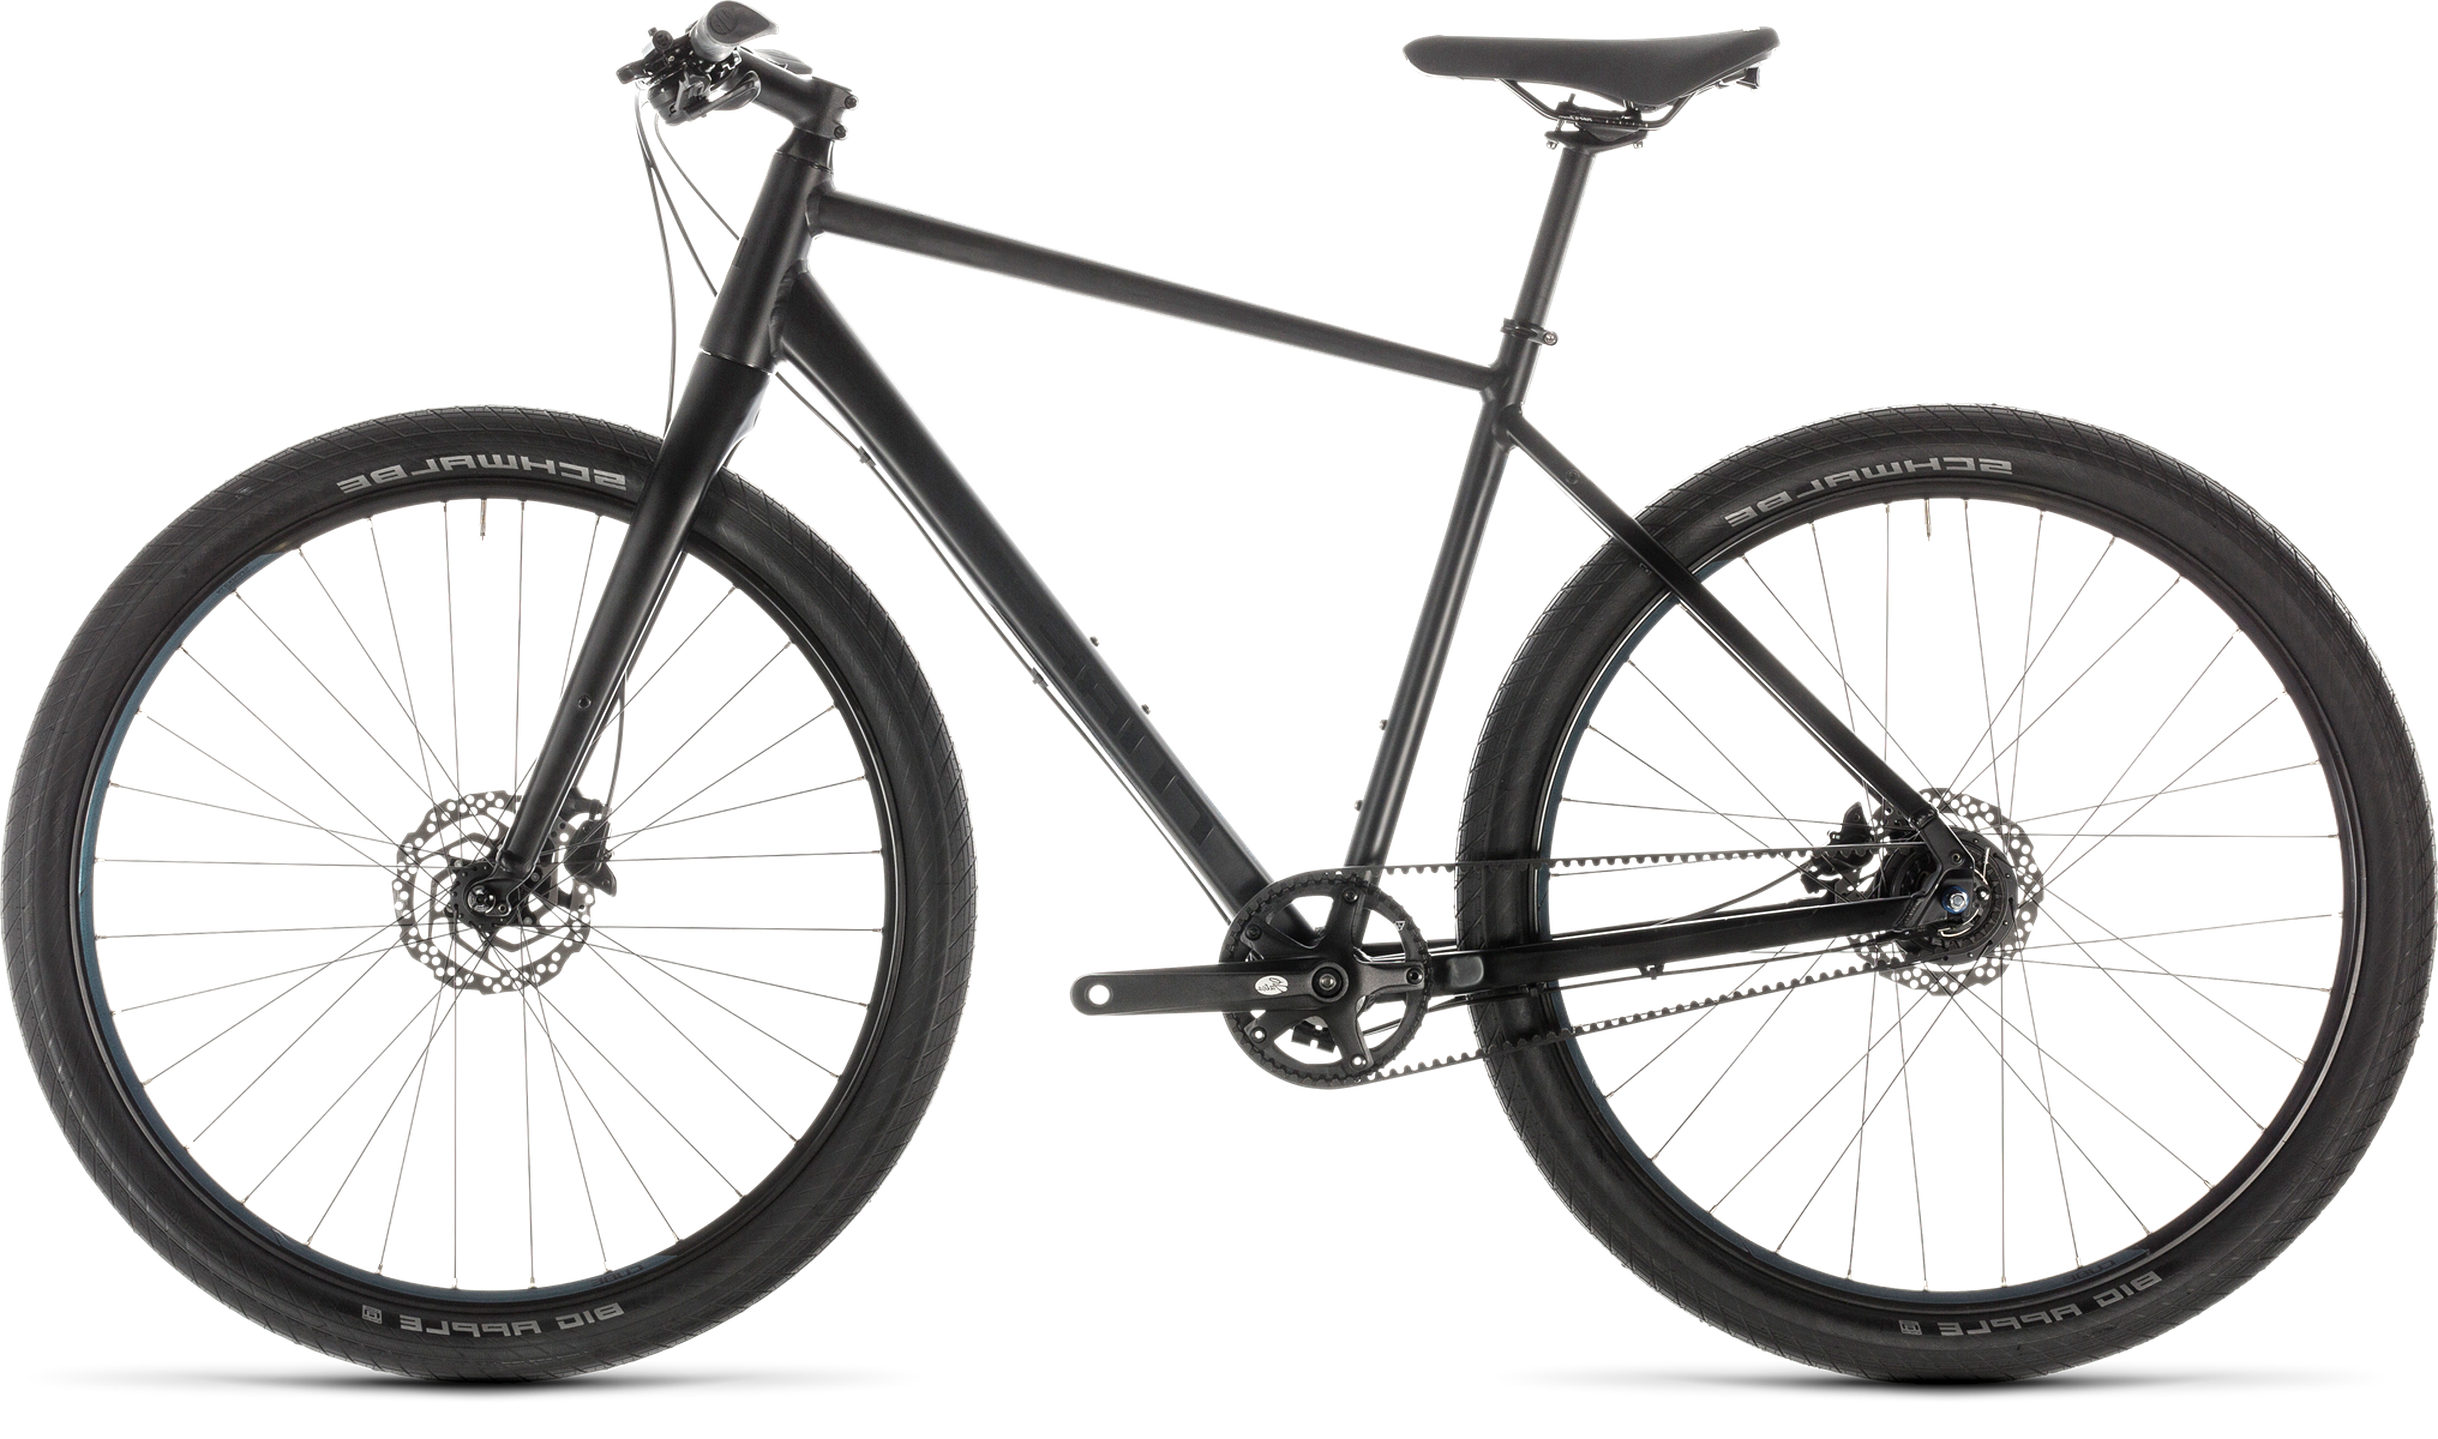 gents hybrid bikes for sale